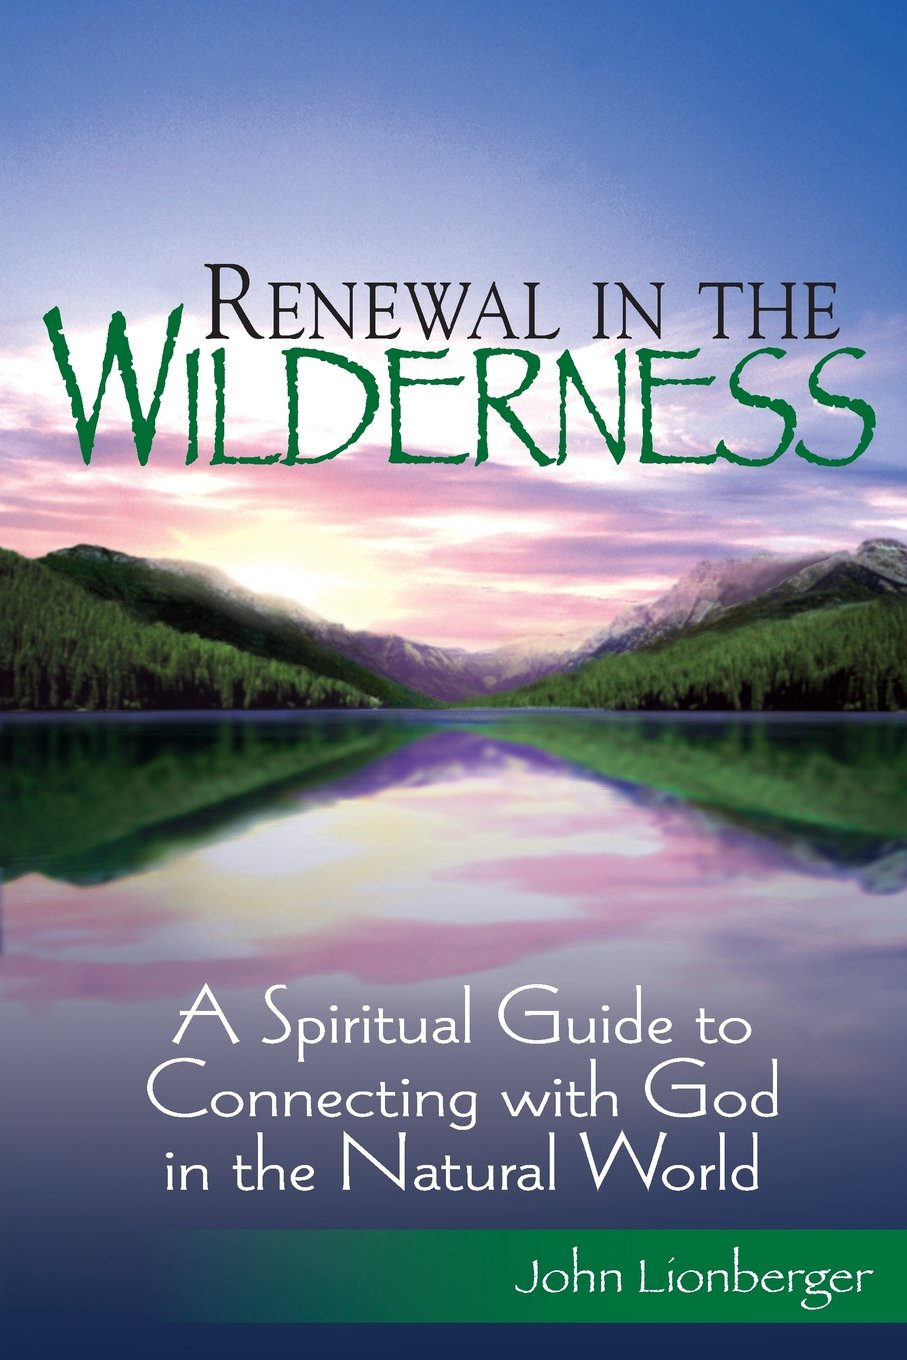 Renewal In The Wilderness: A Spiritual Guide To Connecting With God In The  Natural World: John Lionberger: 9781594732195: Amazon: Books